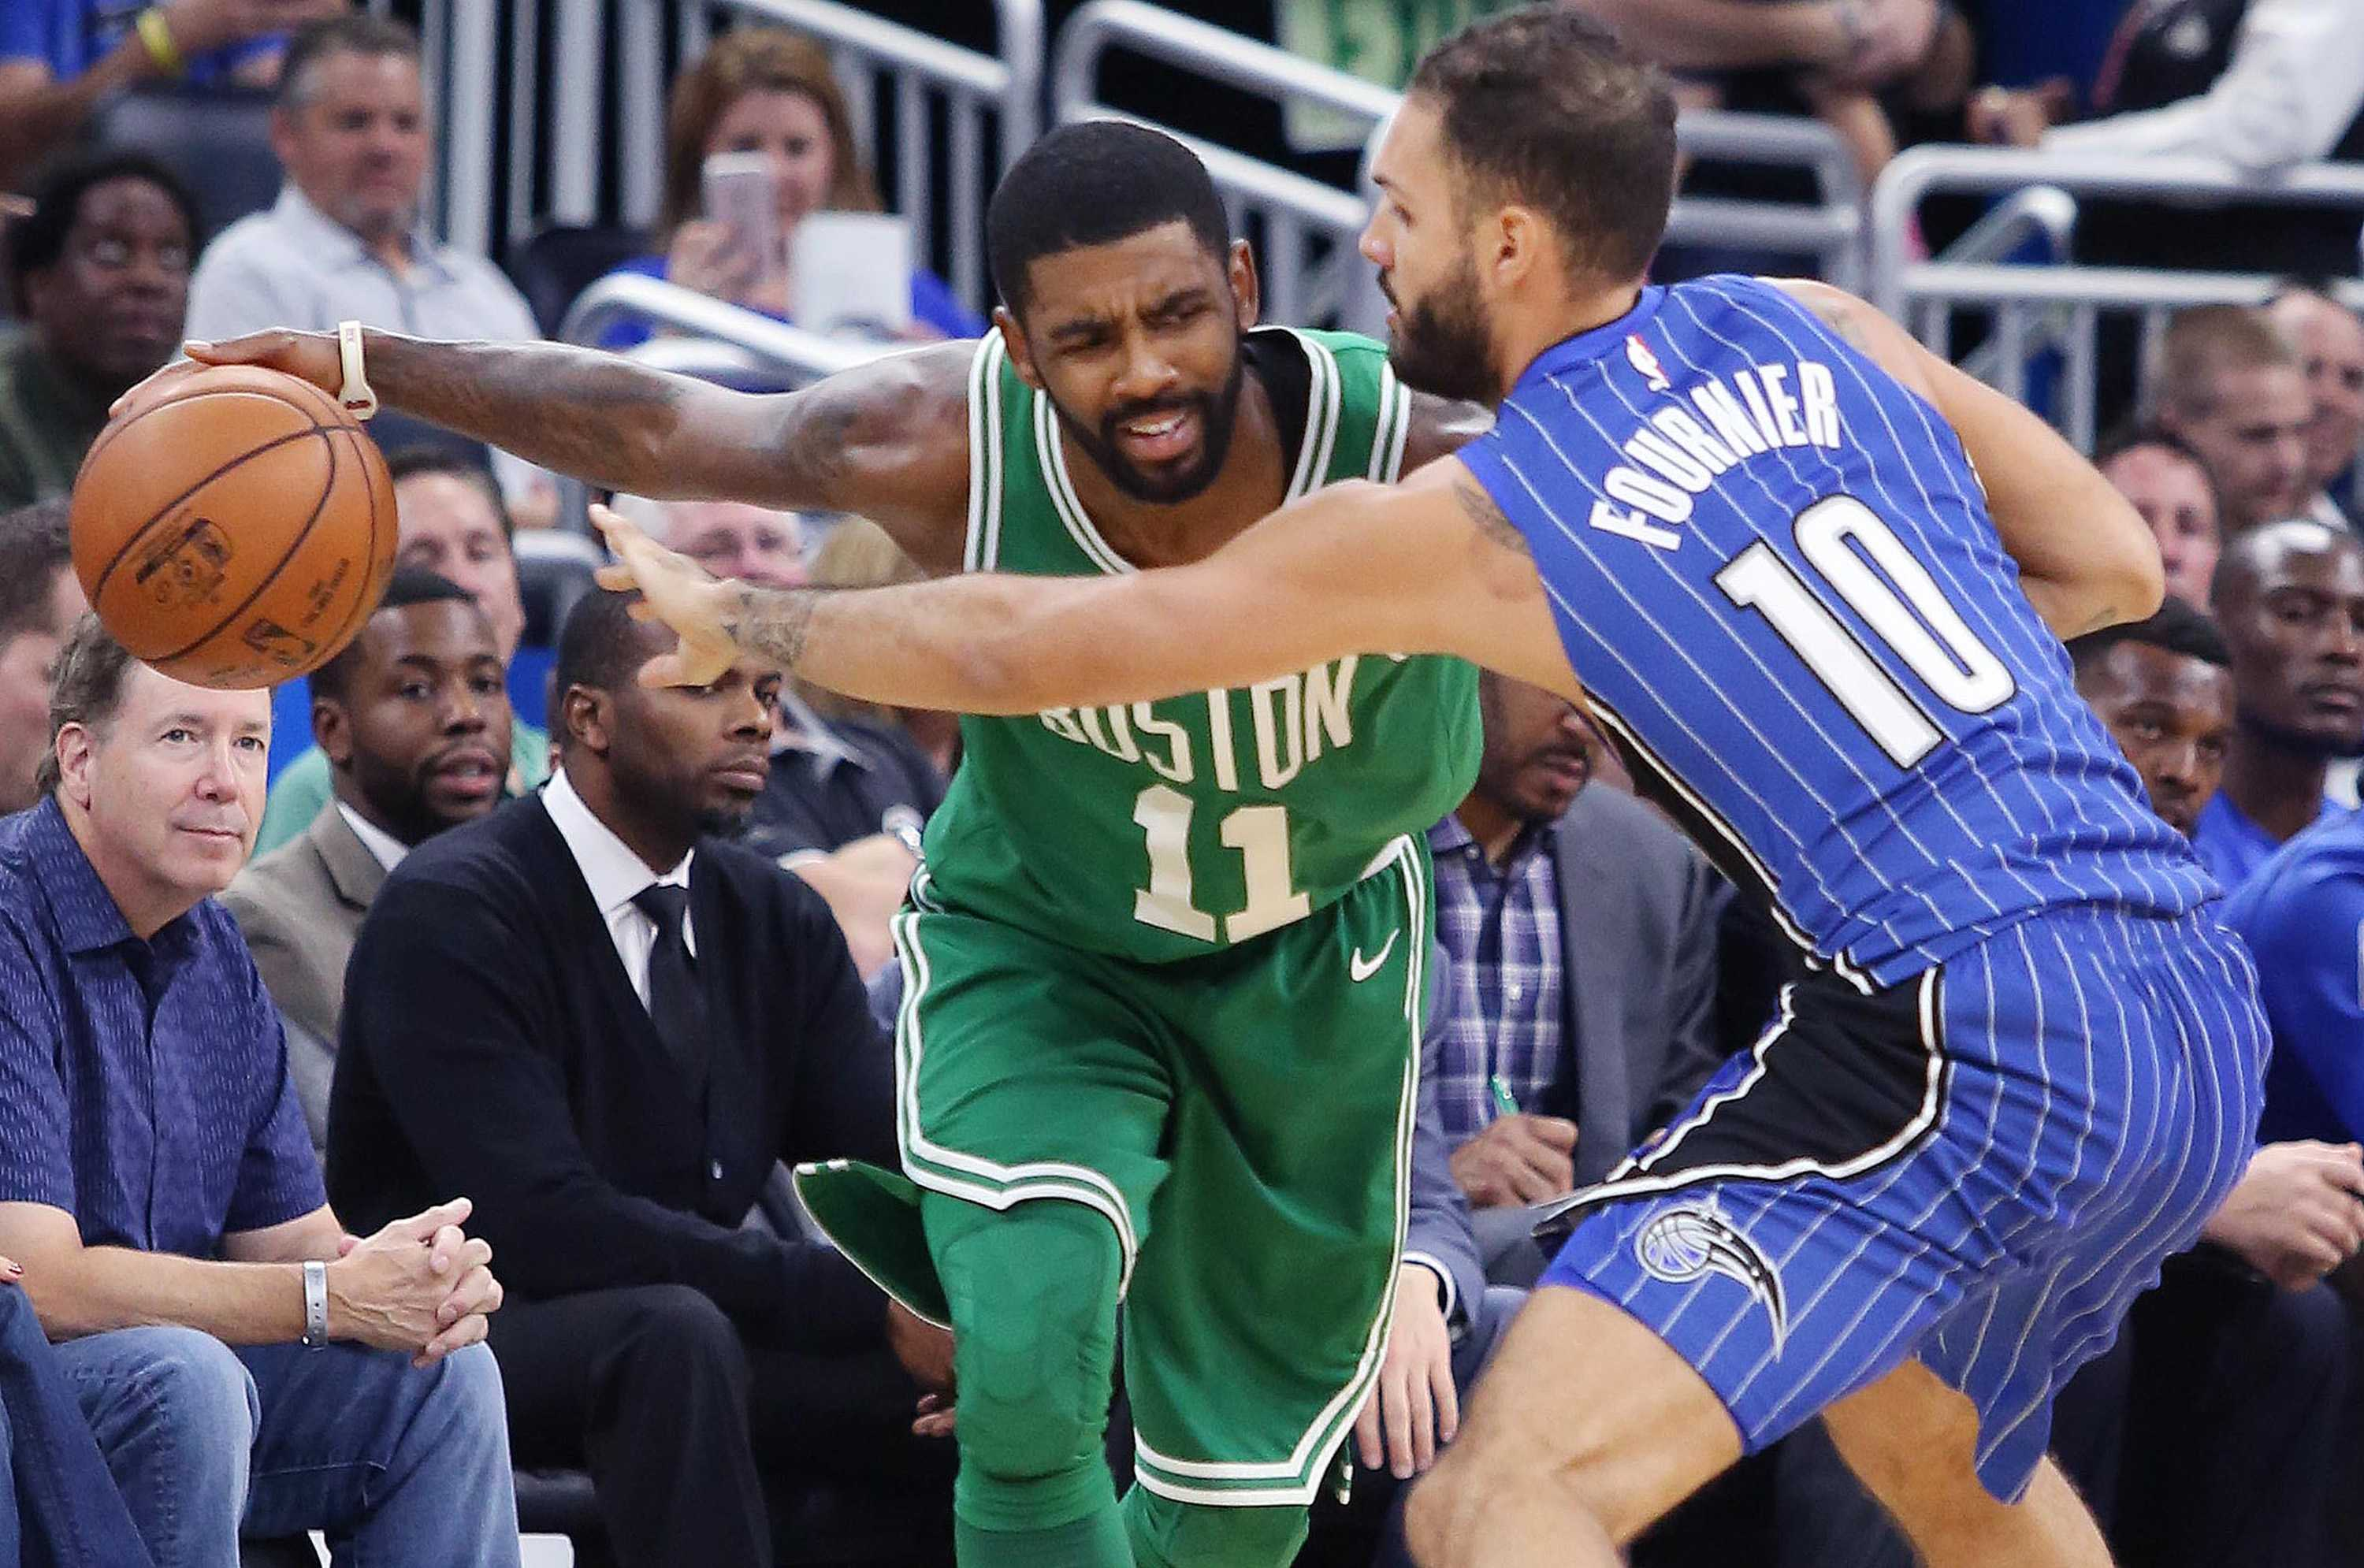 Orlando Magic forward Evan Fournier (10) tries to stop Boston Celtics guard Kyrie Irving (11) on Sunday, Nov. 5, 2017 at the Amway Center in Orlando, Fla. (Stephen M. Dowell/Orlando Sentinel/TNS)